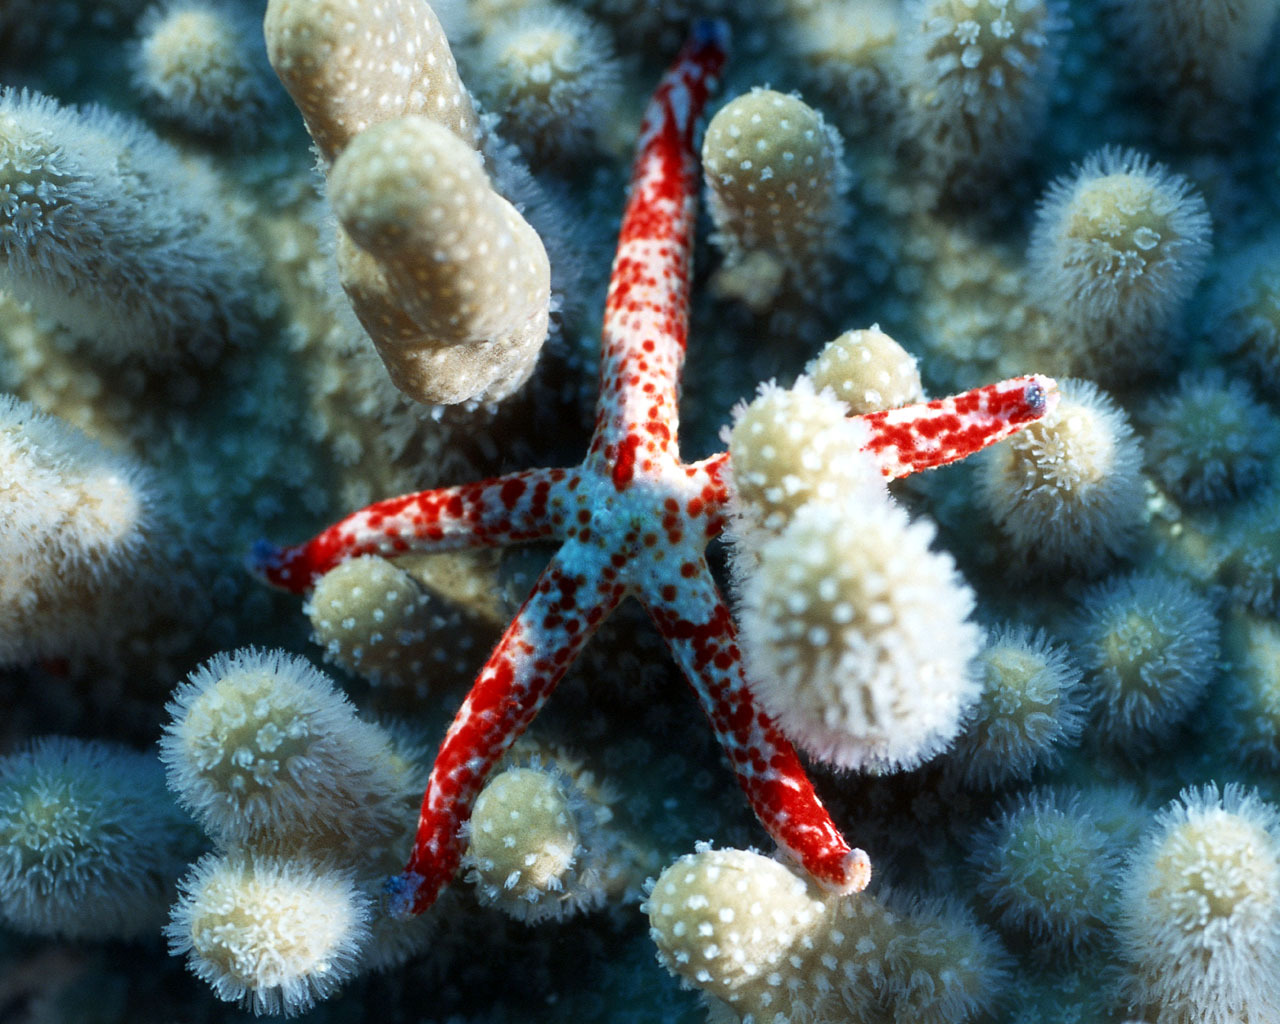 12664 download wallpaper Animals, Sea, Starfish screensavers and pictures for free